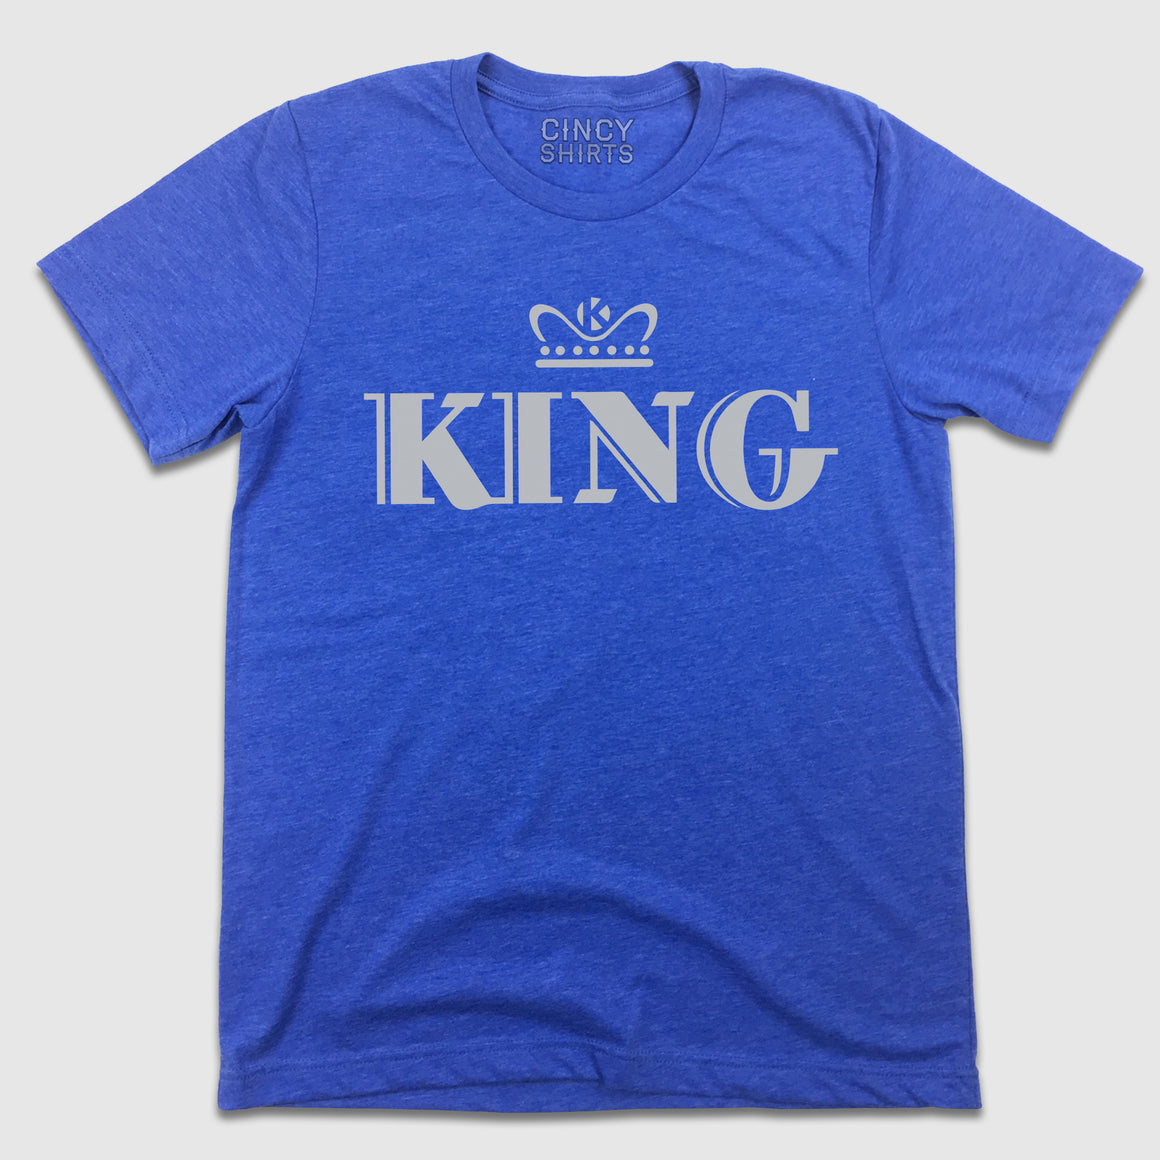 King Records - Cincy Shirts